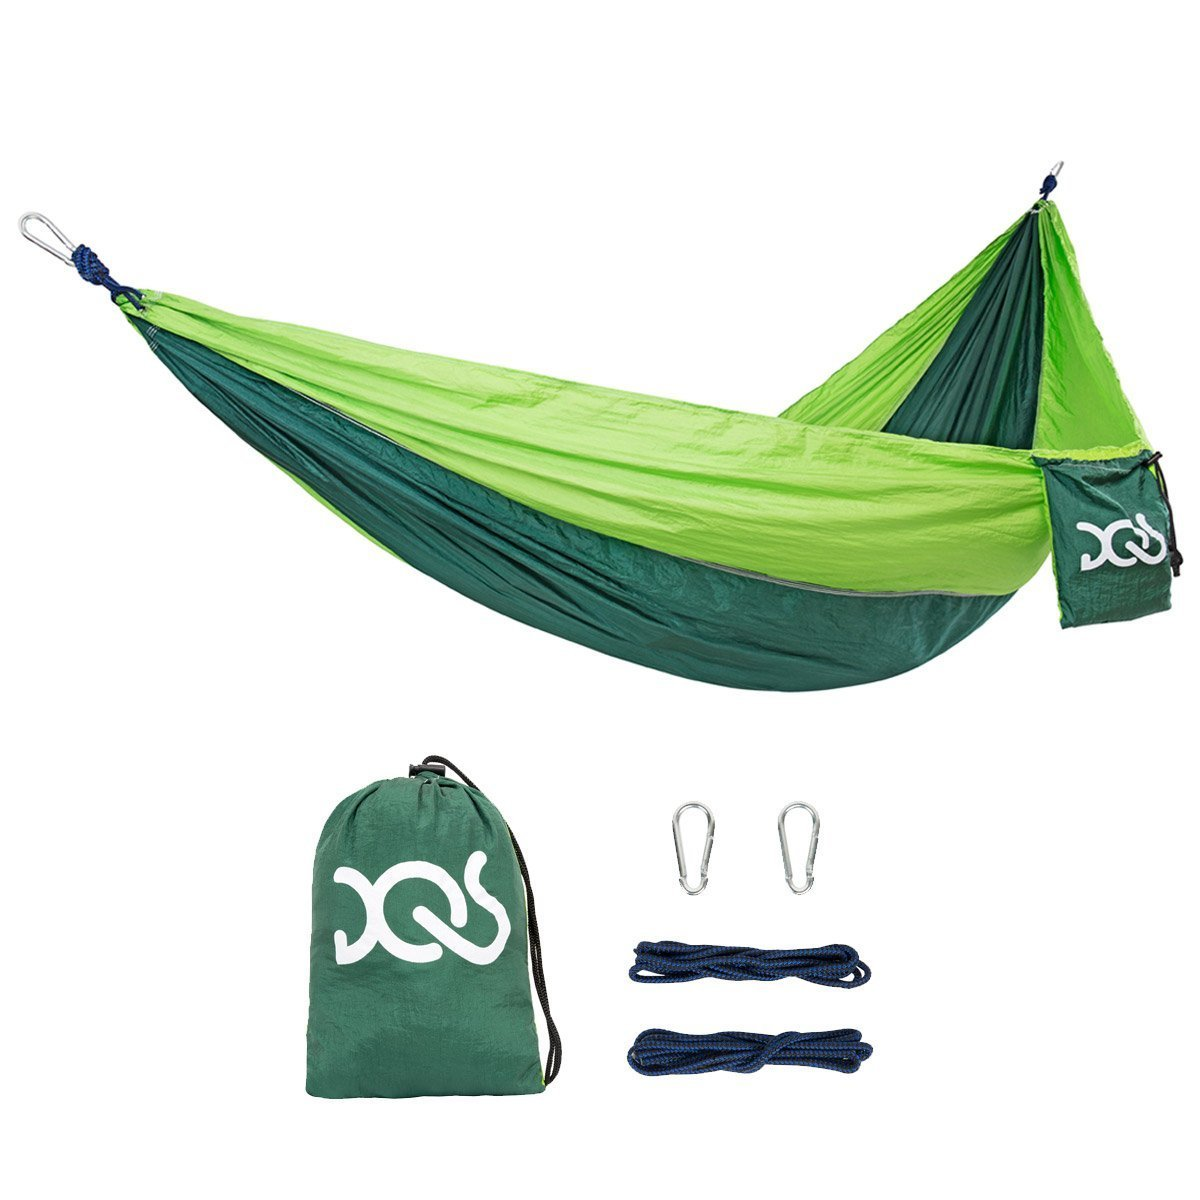 DQS Double Camping Hammock, Portable Lightweight Parachute Nylon Fabric Hammock,600 lbs Capacity, for Outdoor, Camping, Backpacking, Travel, Garden, Yard, Beach, Swing, Any Adventure by DQS